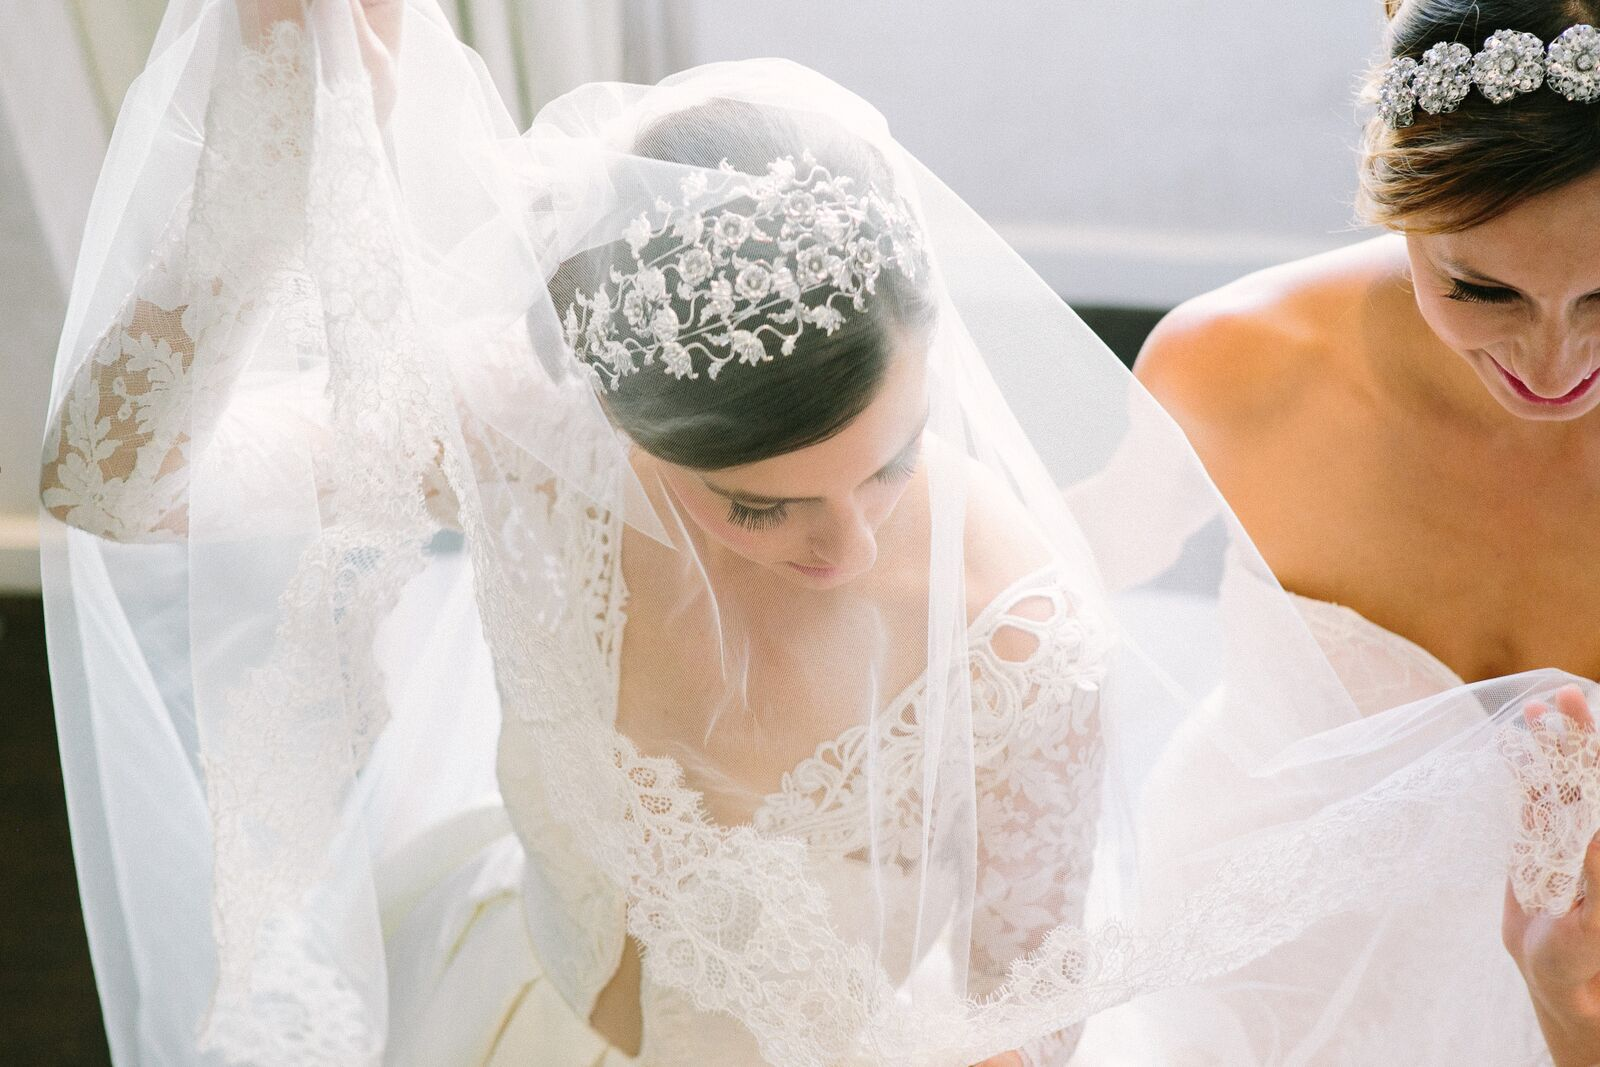 #bridalaccessories ideas and so much more pretty from @DMeventsNY  on Instagram to see so much pretty. Follow them here https://instagram.com/dmeventsny